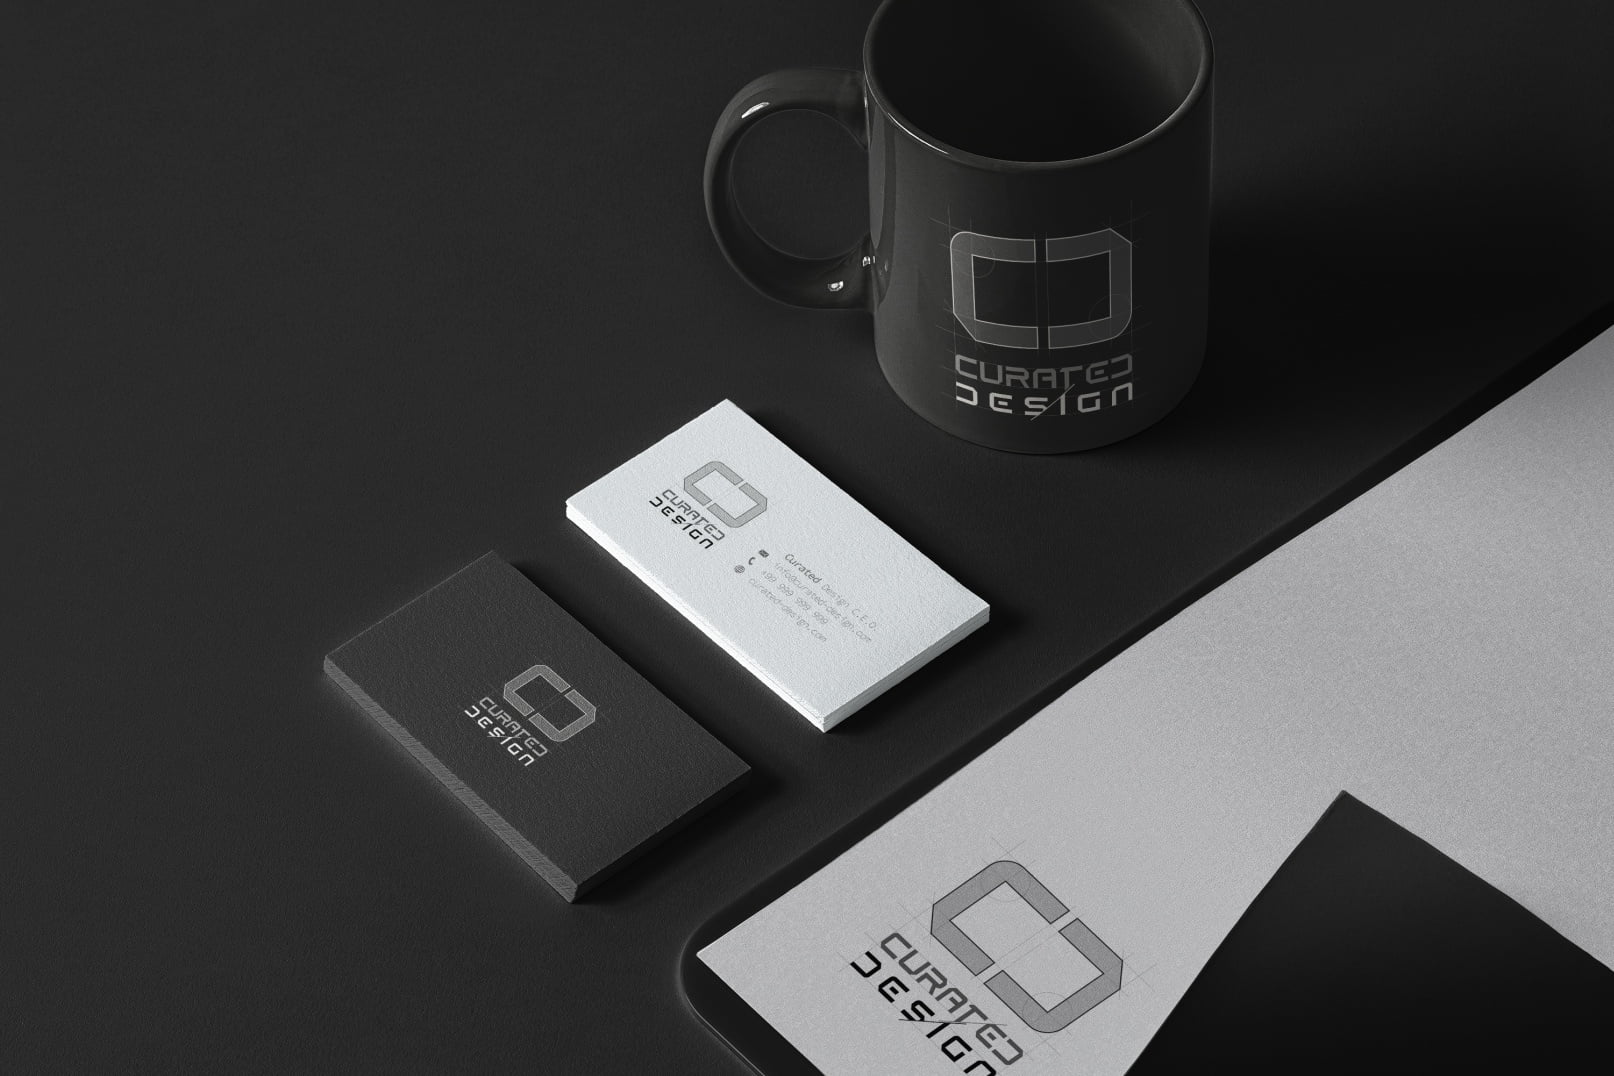 curated-design-blog005